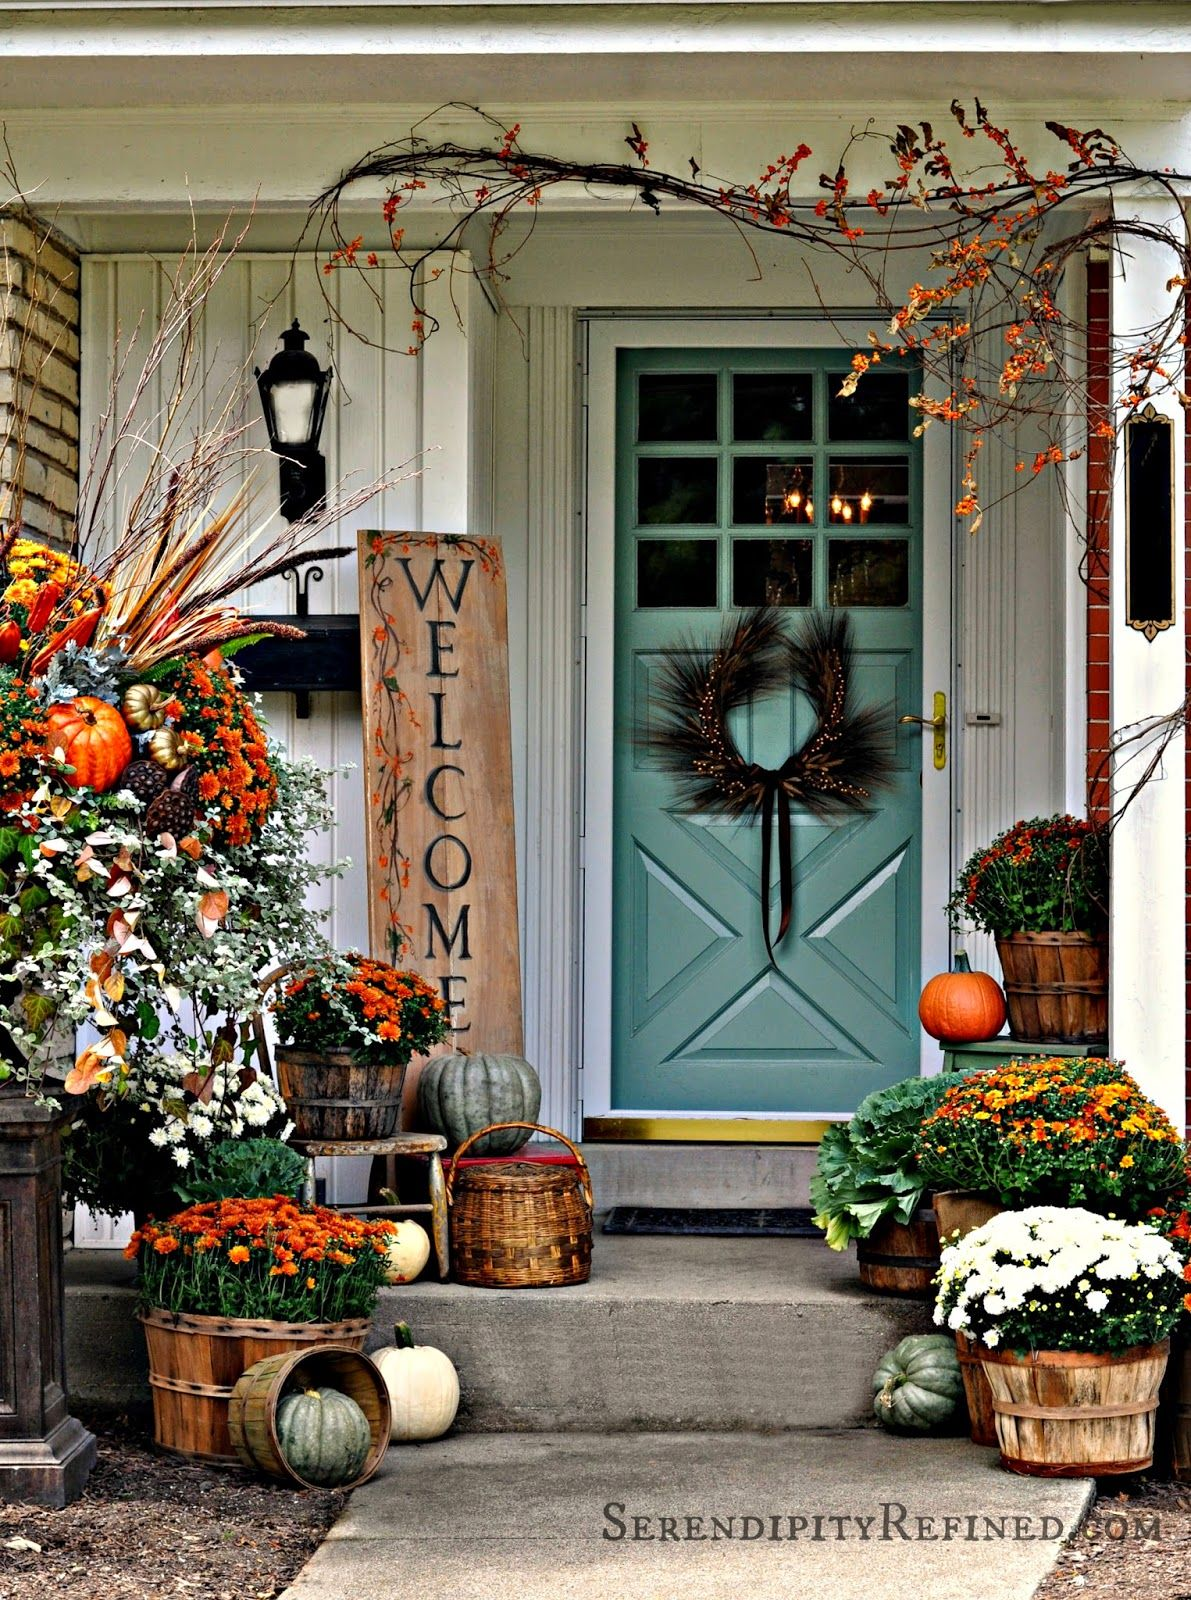 serendipity refined fall harvest porch decor with